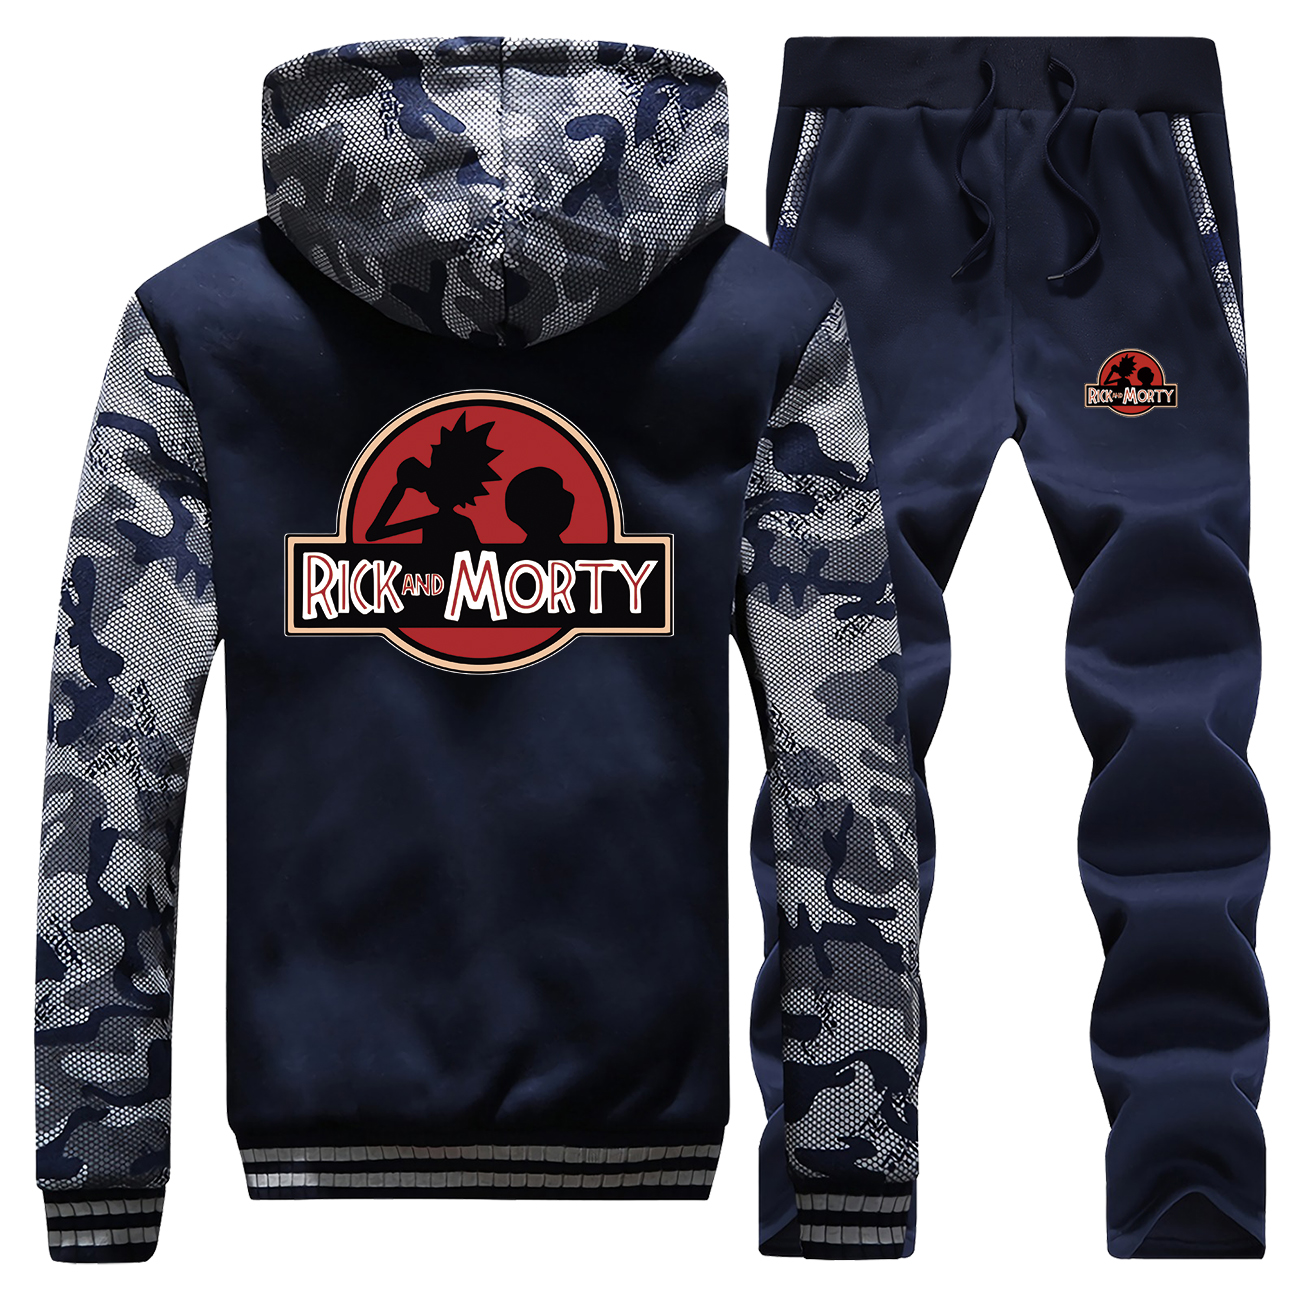 Rick And Morty Streetwear Winter 2019 Cartoon Hoodies Mens Camouflage Raglan Suit Sweatshirts Coat Thick Hoody+Pants 2 Piece Set